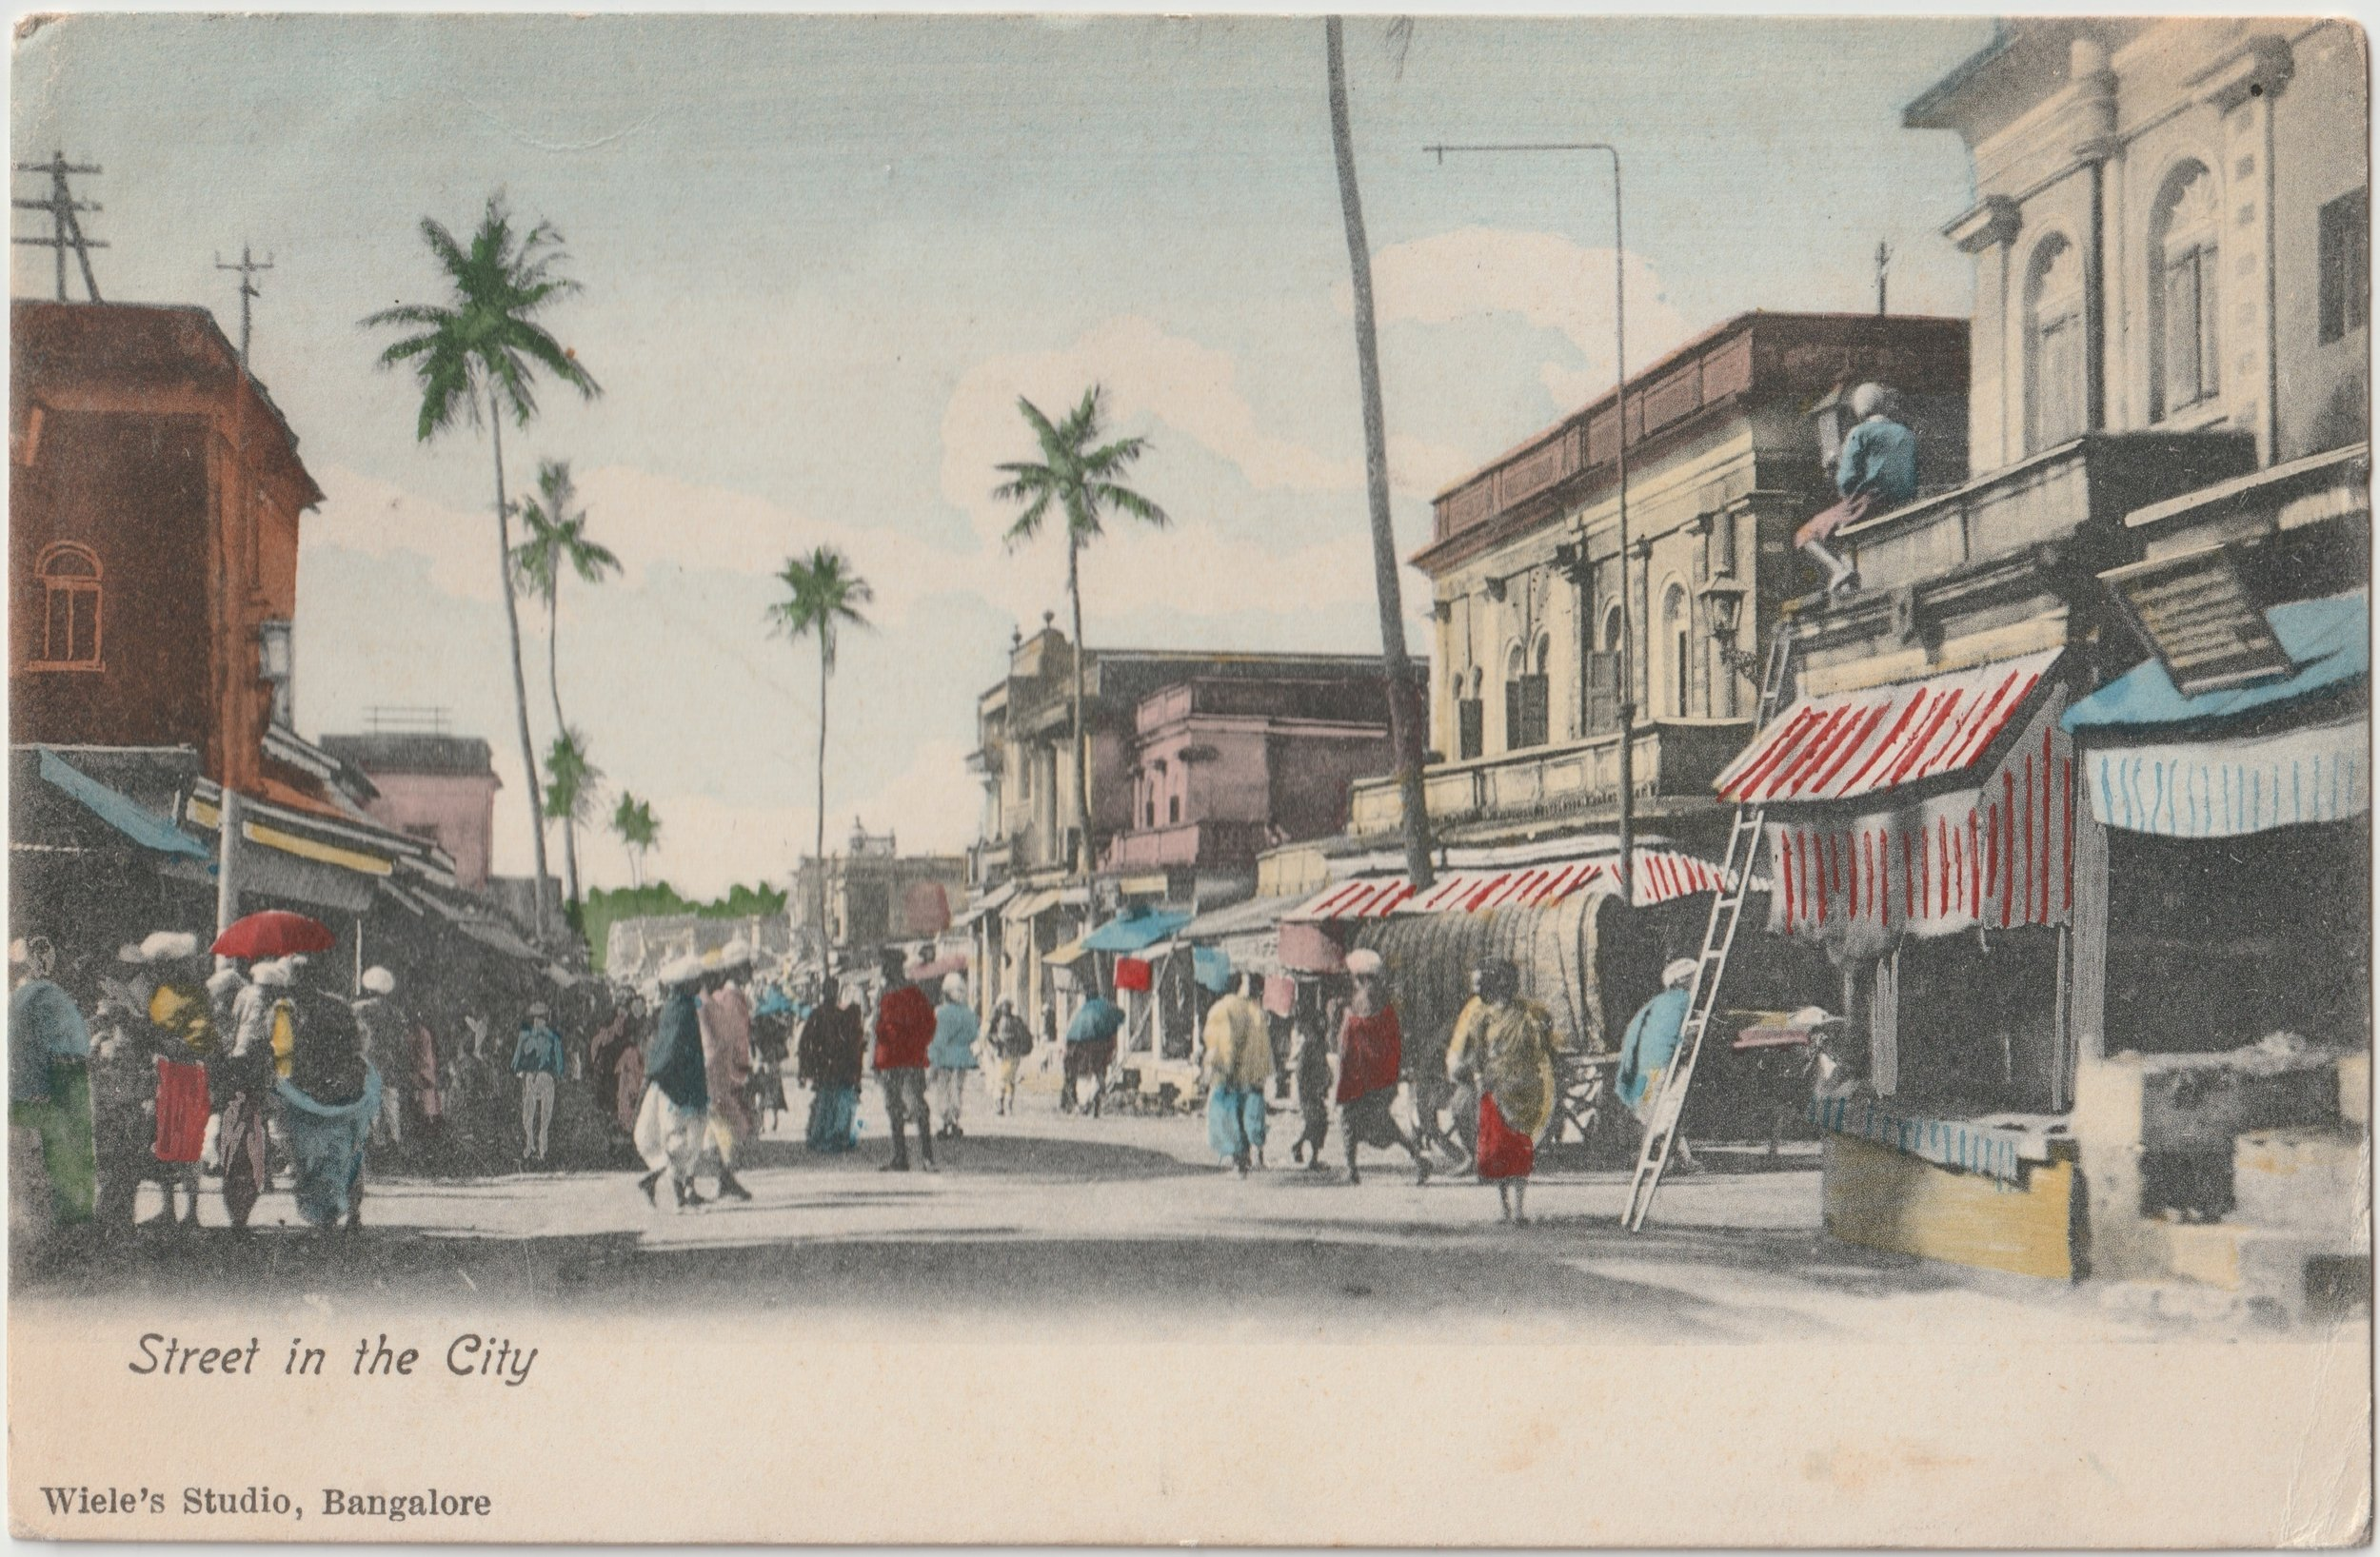 """Street in the City"". Published by Wiele's Studio, Bangalore. Posted on: 31.01.1907.    Message reads:  after I finish my mail Ella asks me to say regarding photo enclosed that it is a puzzle photo and the puzzle is to find Ella Brown """